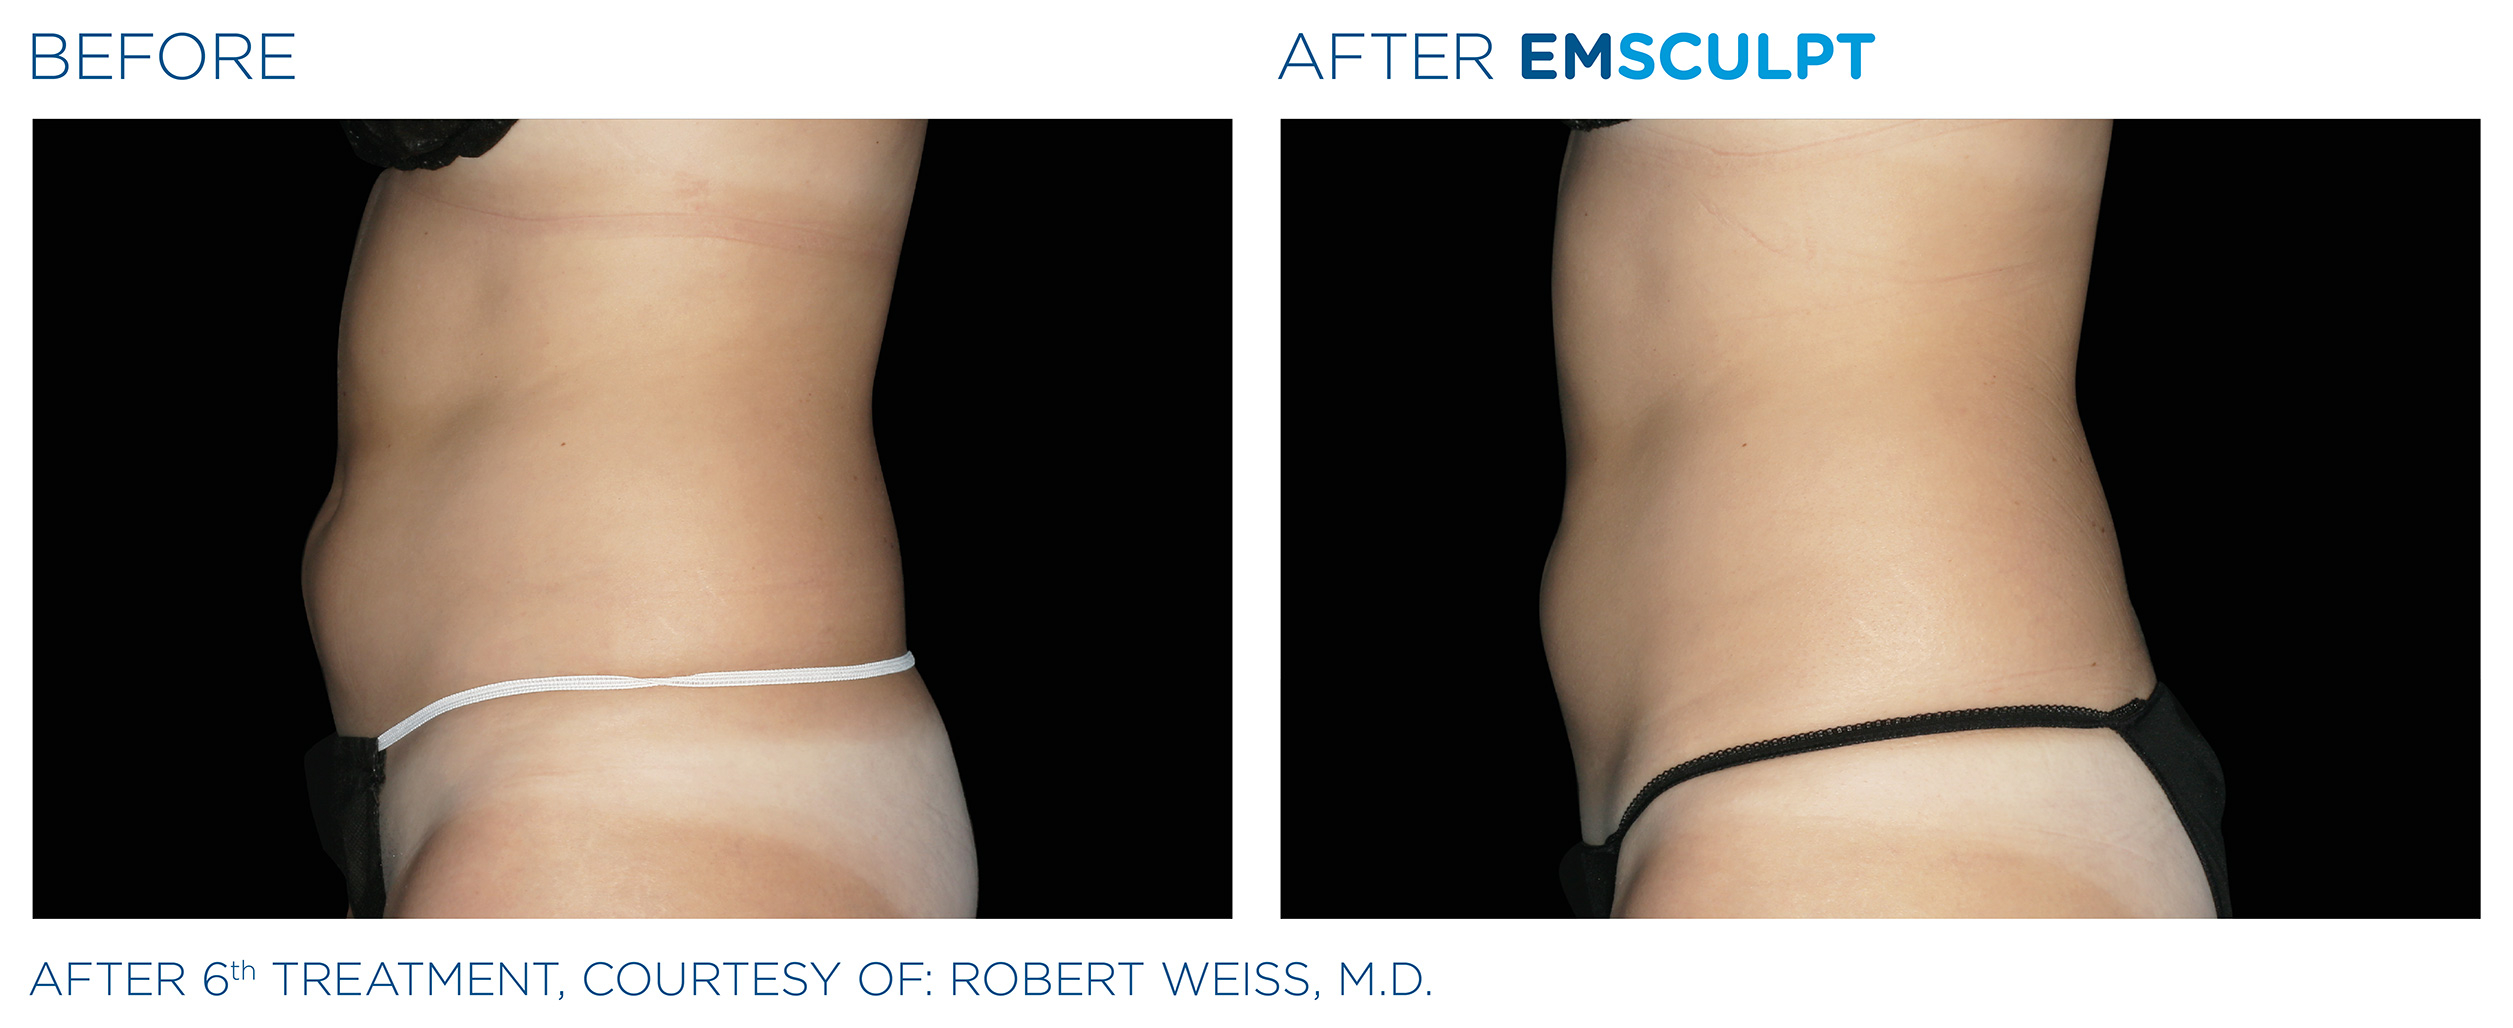 EMSCULPT Before & After Photos | Abdomen 5